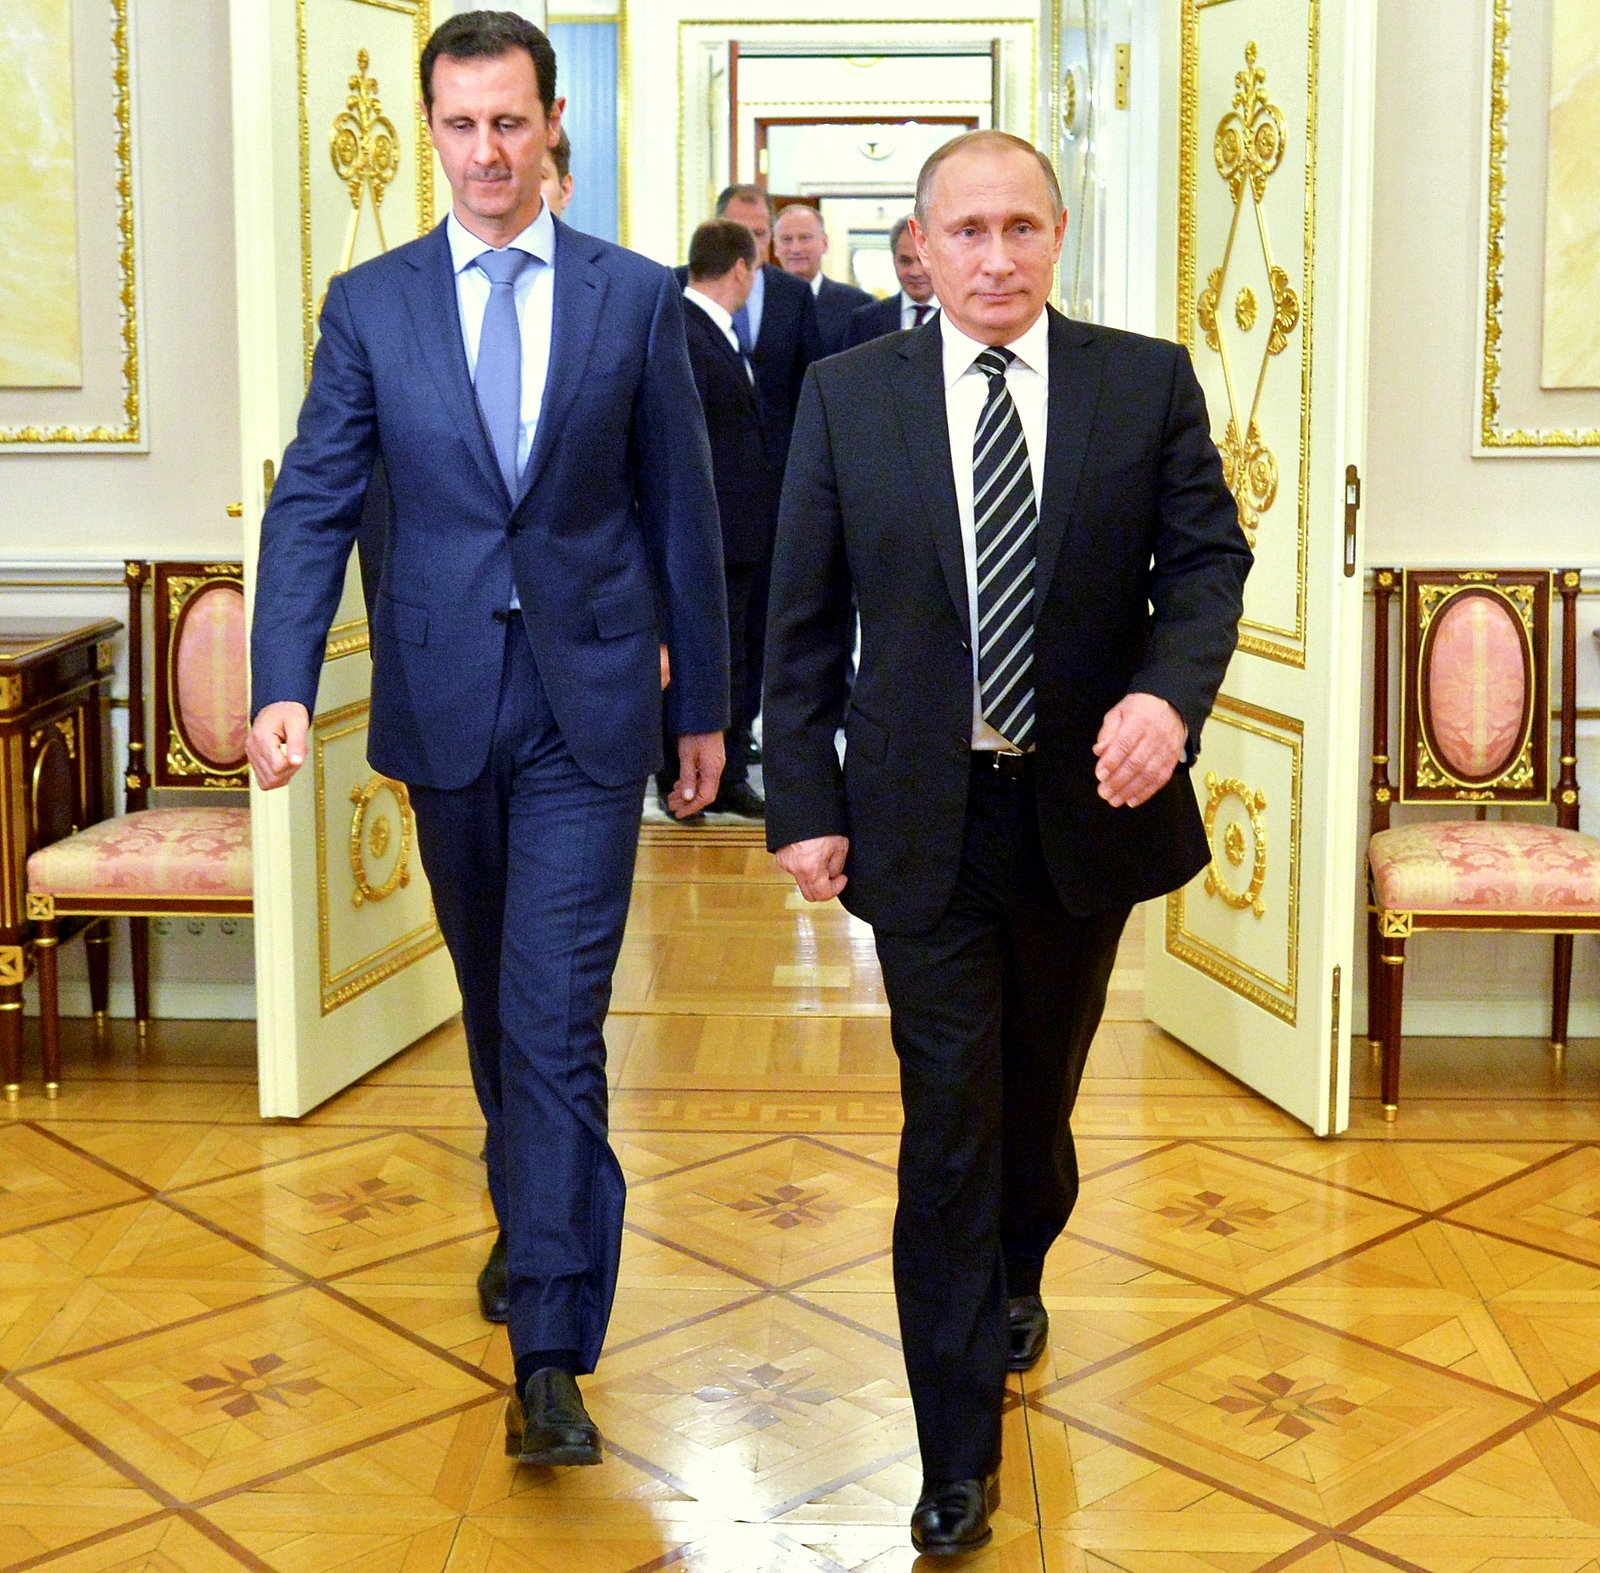 In this photo taken on Tuesday, Oct. 20, 2015, Russian President Vladimir Putin, right, and Syria President Bashar Assad arrive for their meeting in the Kremlin in Moscow, Russia. President Bashar Assad was in Moscow, in his first known trip abroad since the war broke out in Syria in 2011, to meet his strongest ally Russian leader Vladimir Putin. The two leaders stressed that the military operations in Syria_ in which Moscow is the latest and most powerful addition_ must lead to a political process. (Alexei Druzhinin, RIA-Novosti, Kremlin Pool Photo via AP)